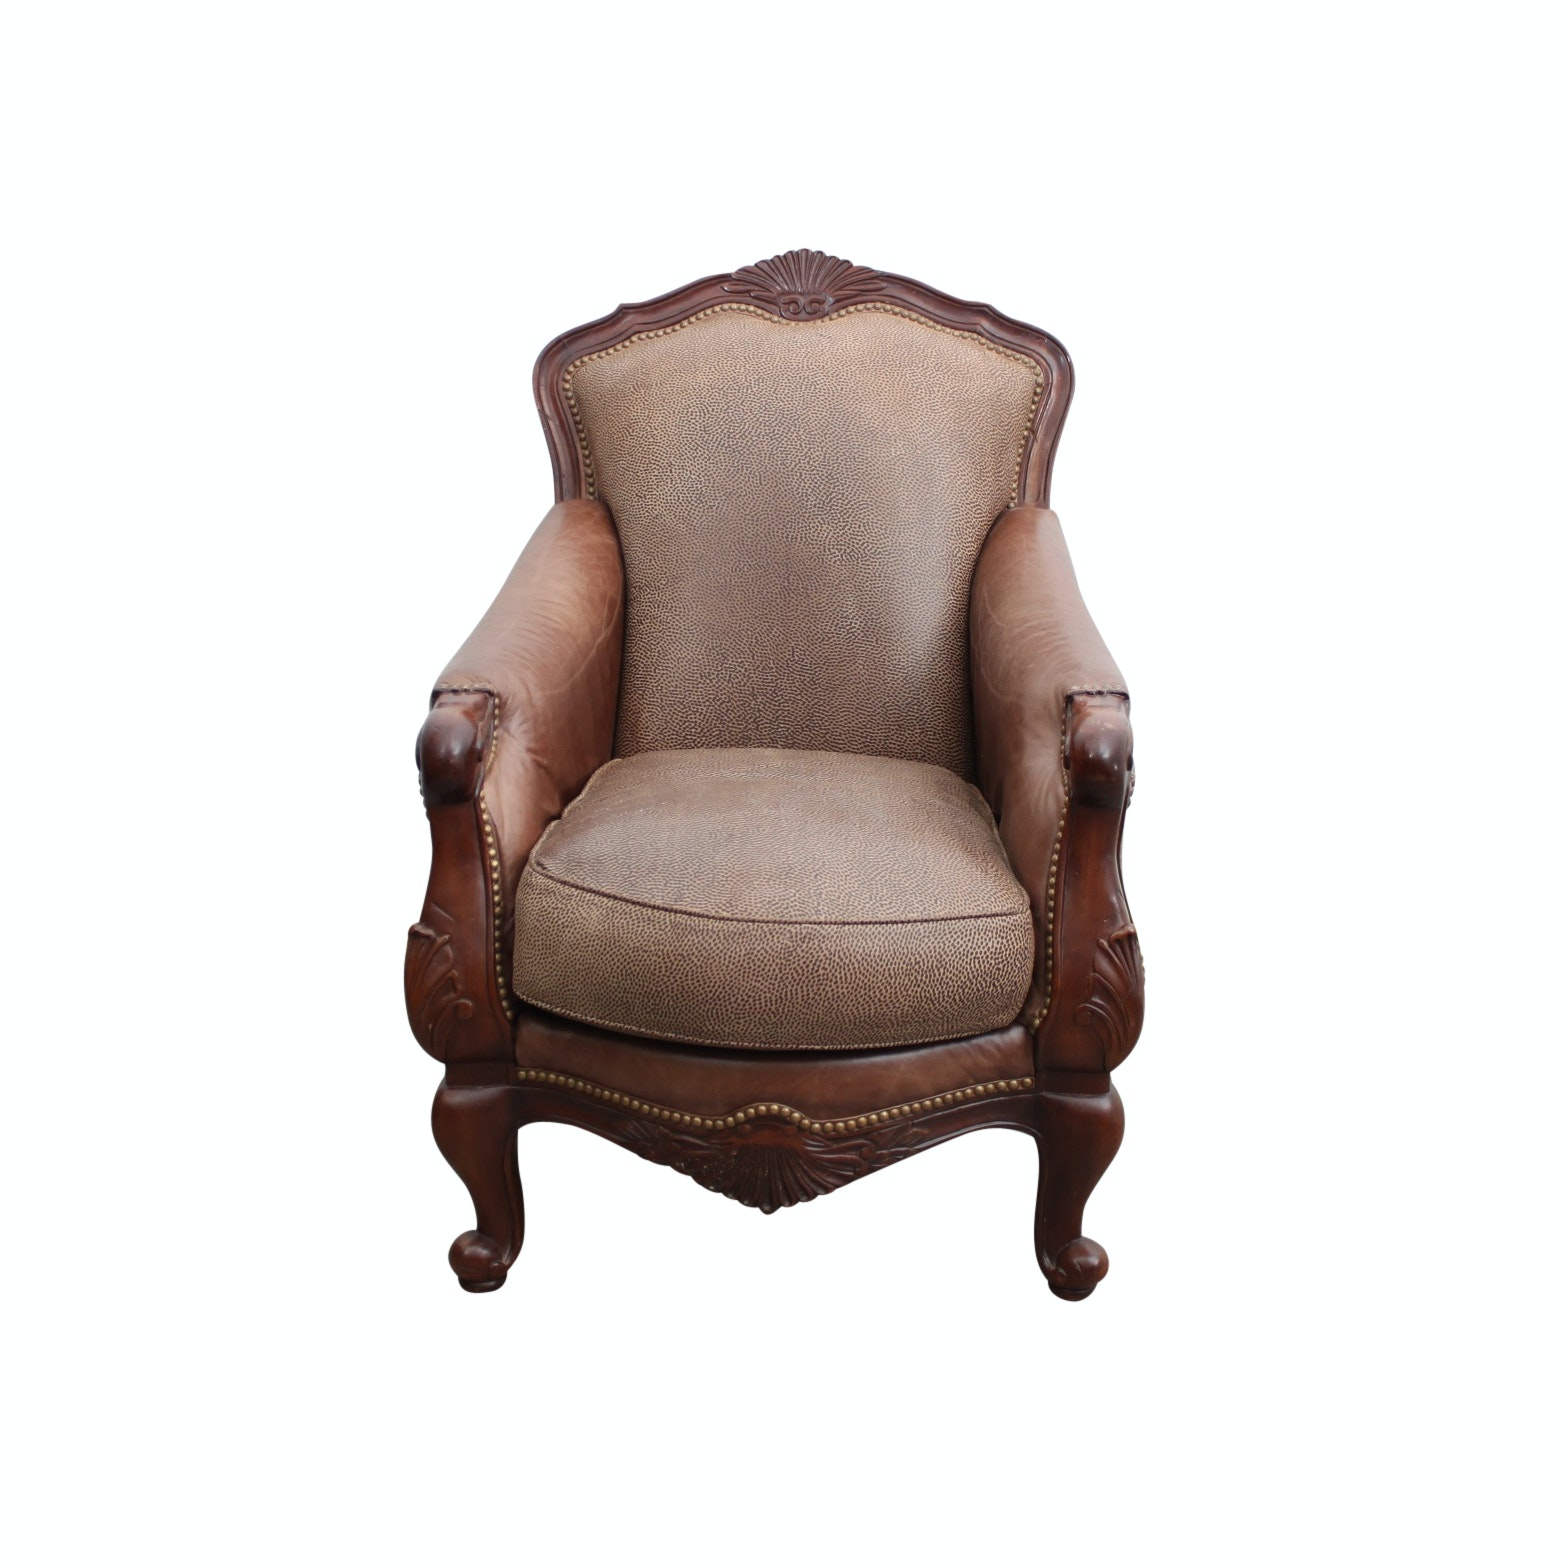 Queen Anne Style Armchair by Magellan's Furniture Emporium